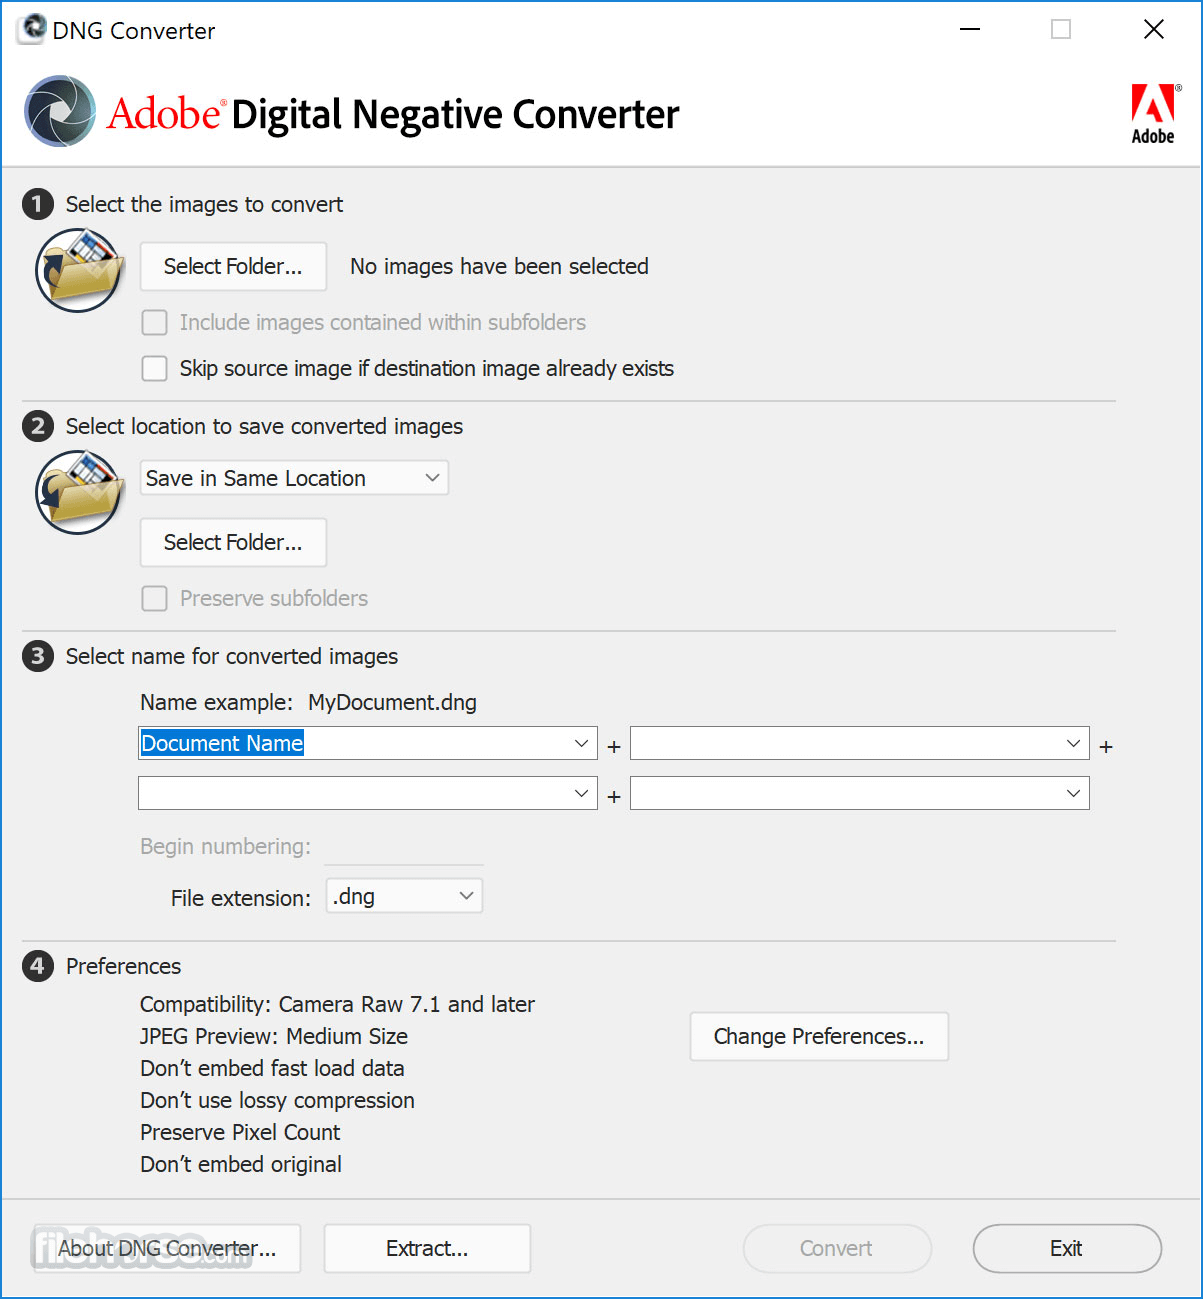 Adobe DNG Converter 10.3.0.933 Screenshot 1